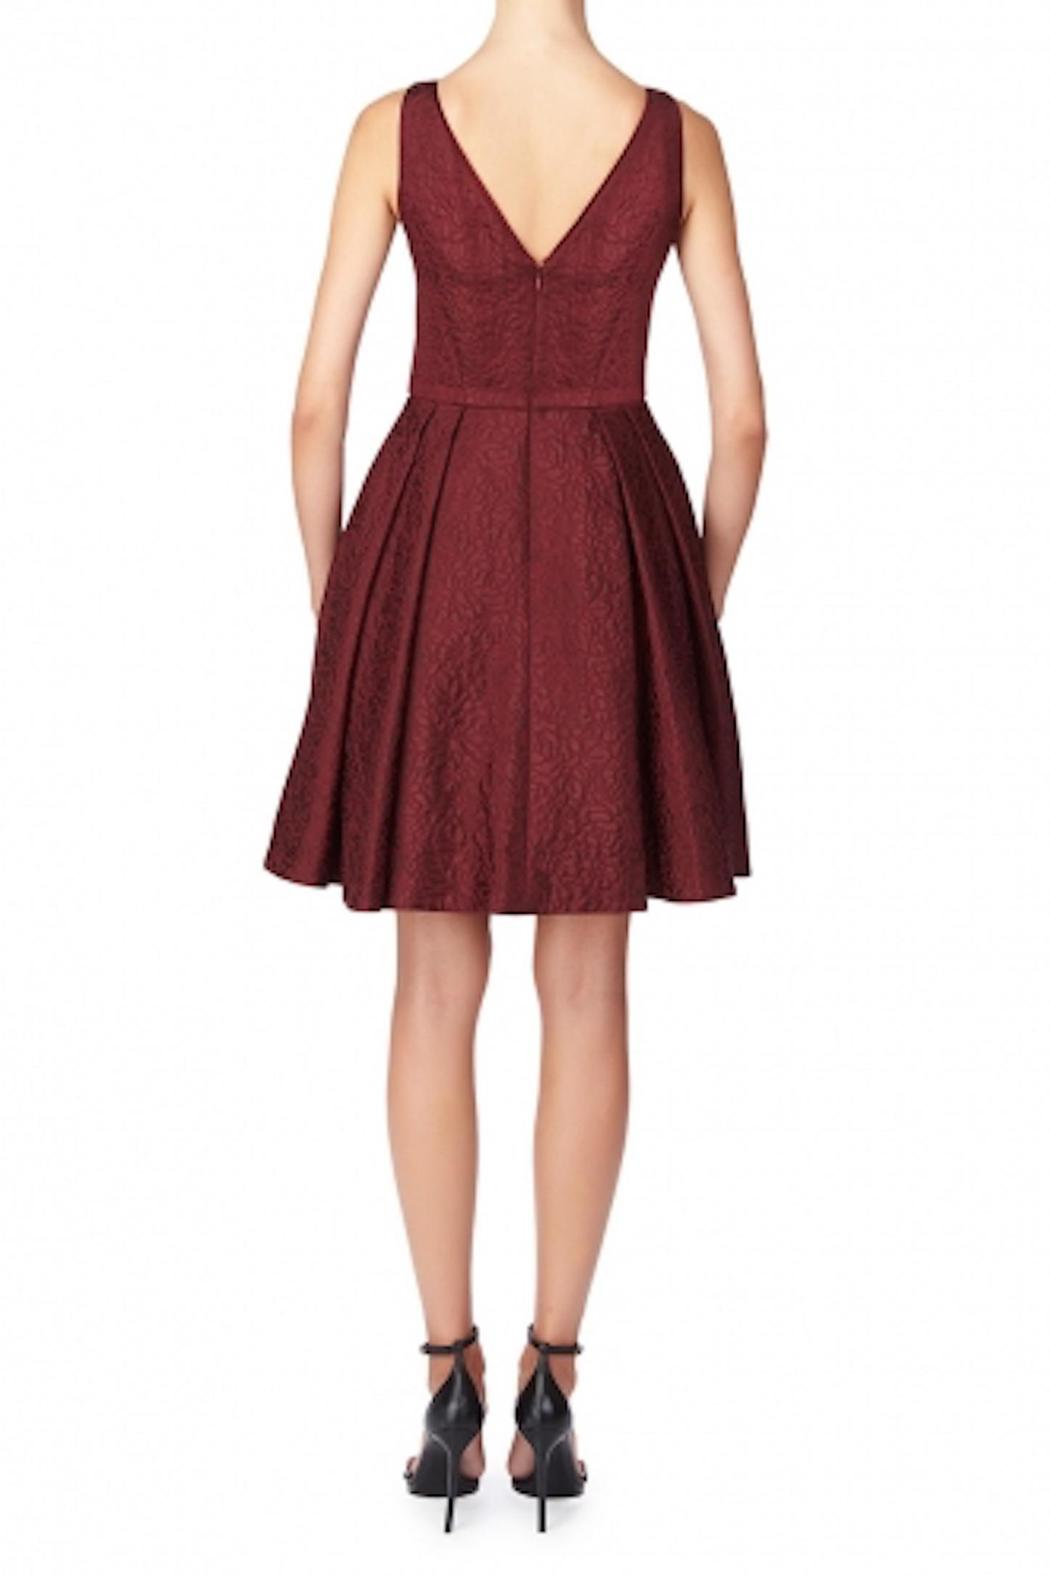 Erin Fetherston Coco Crimson Dress - Side Cropped Image